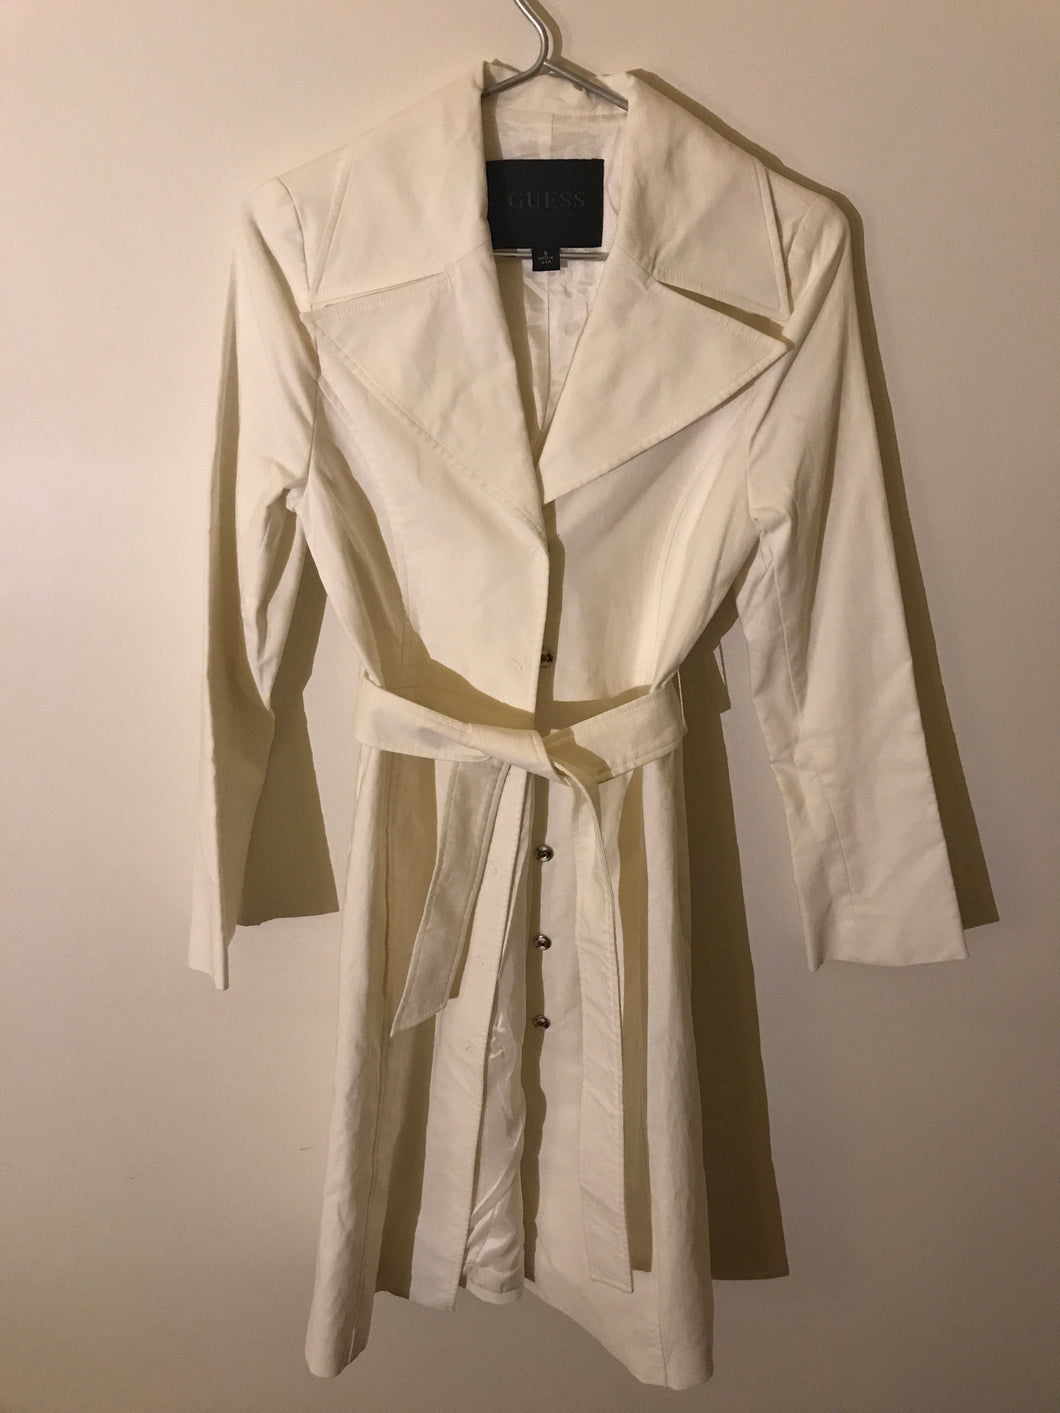 Guess off-white long coat with belt Size Small (6-8 estimate)